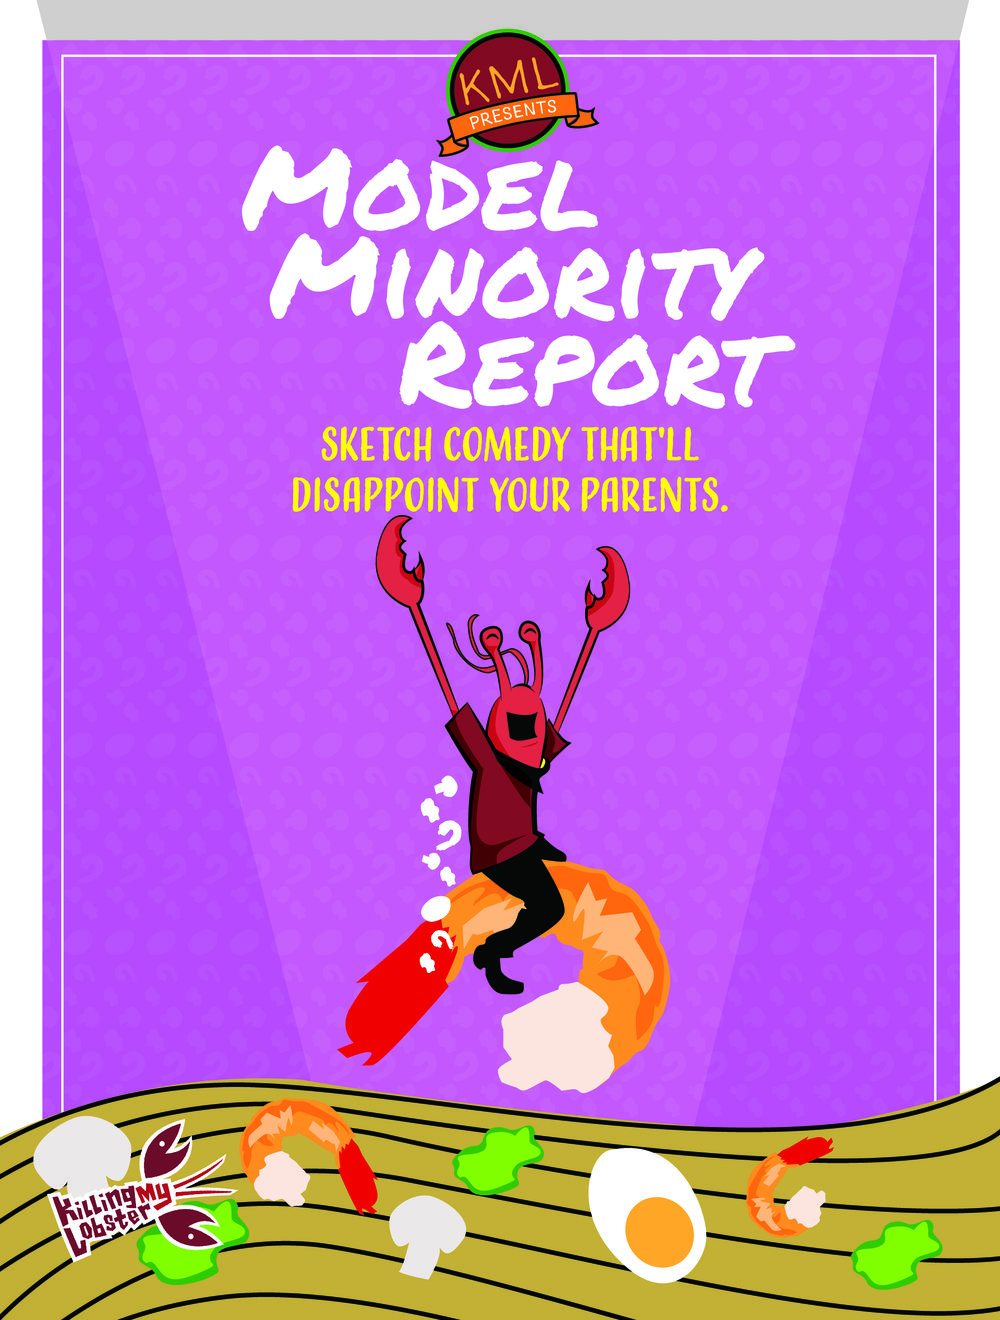 modelminorityreport-01.jpg